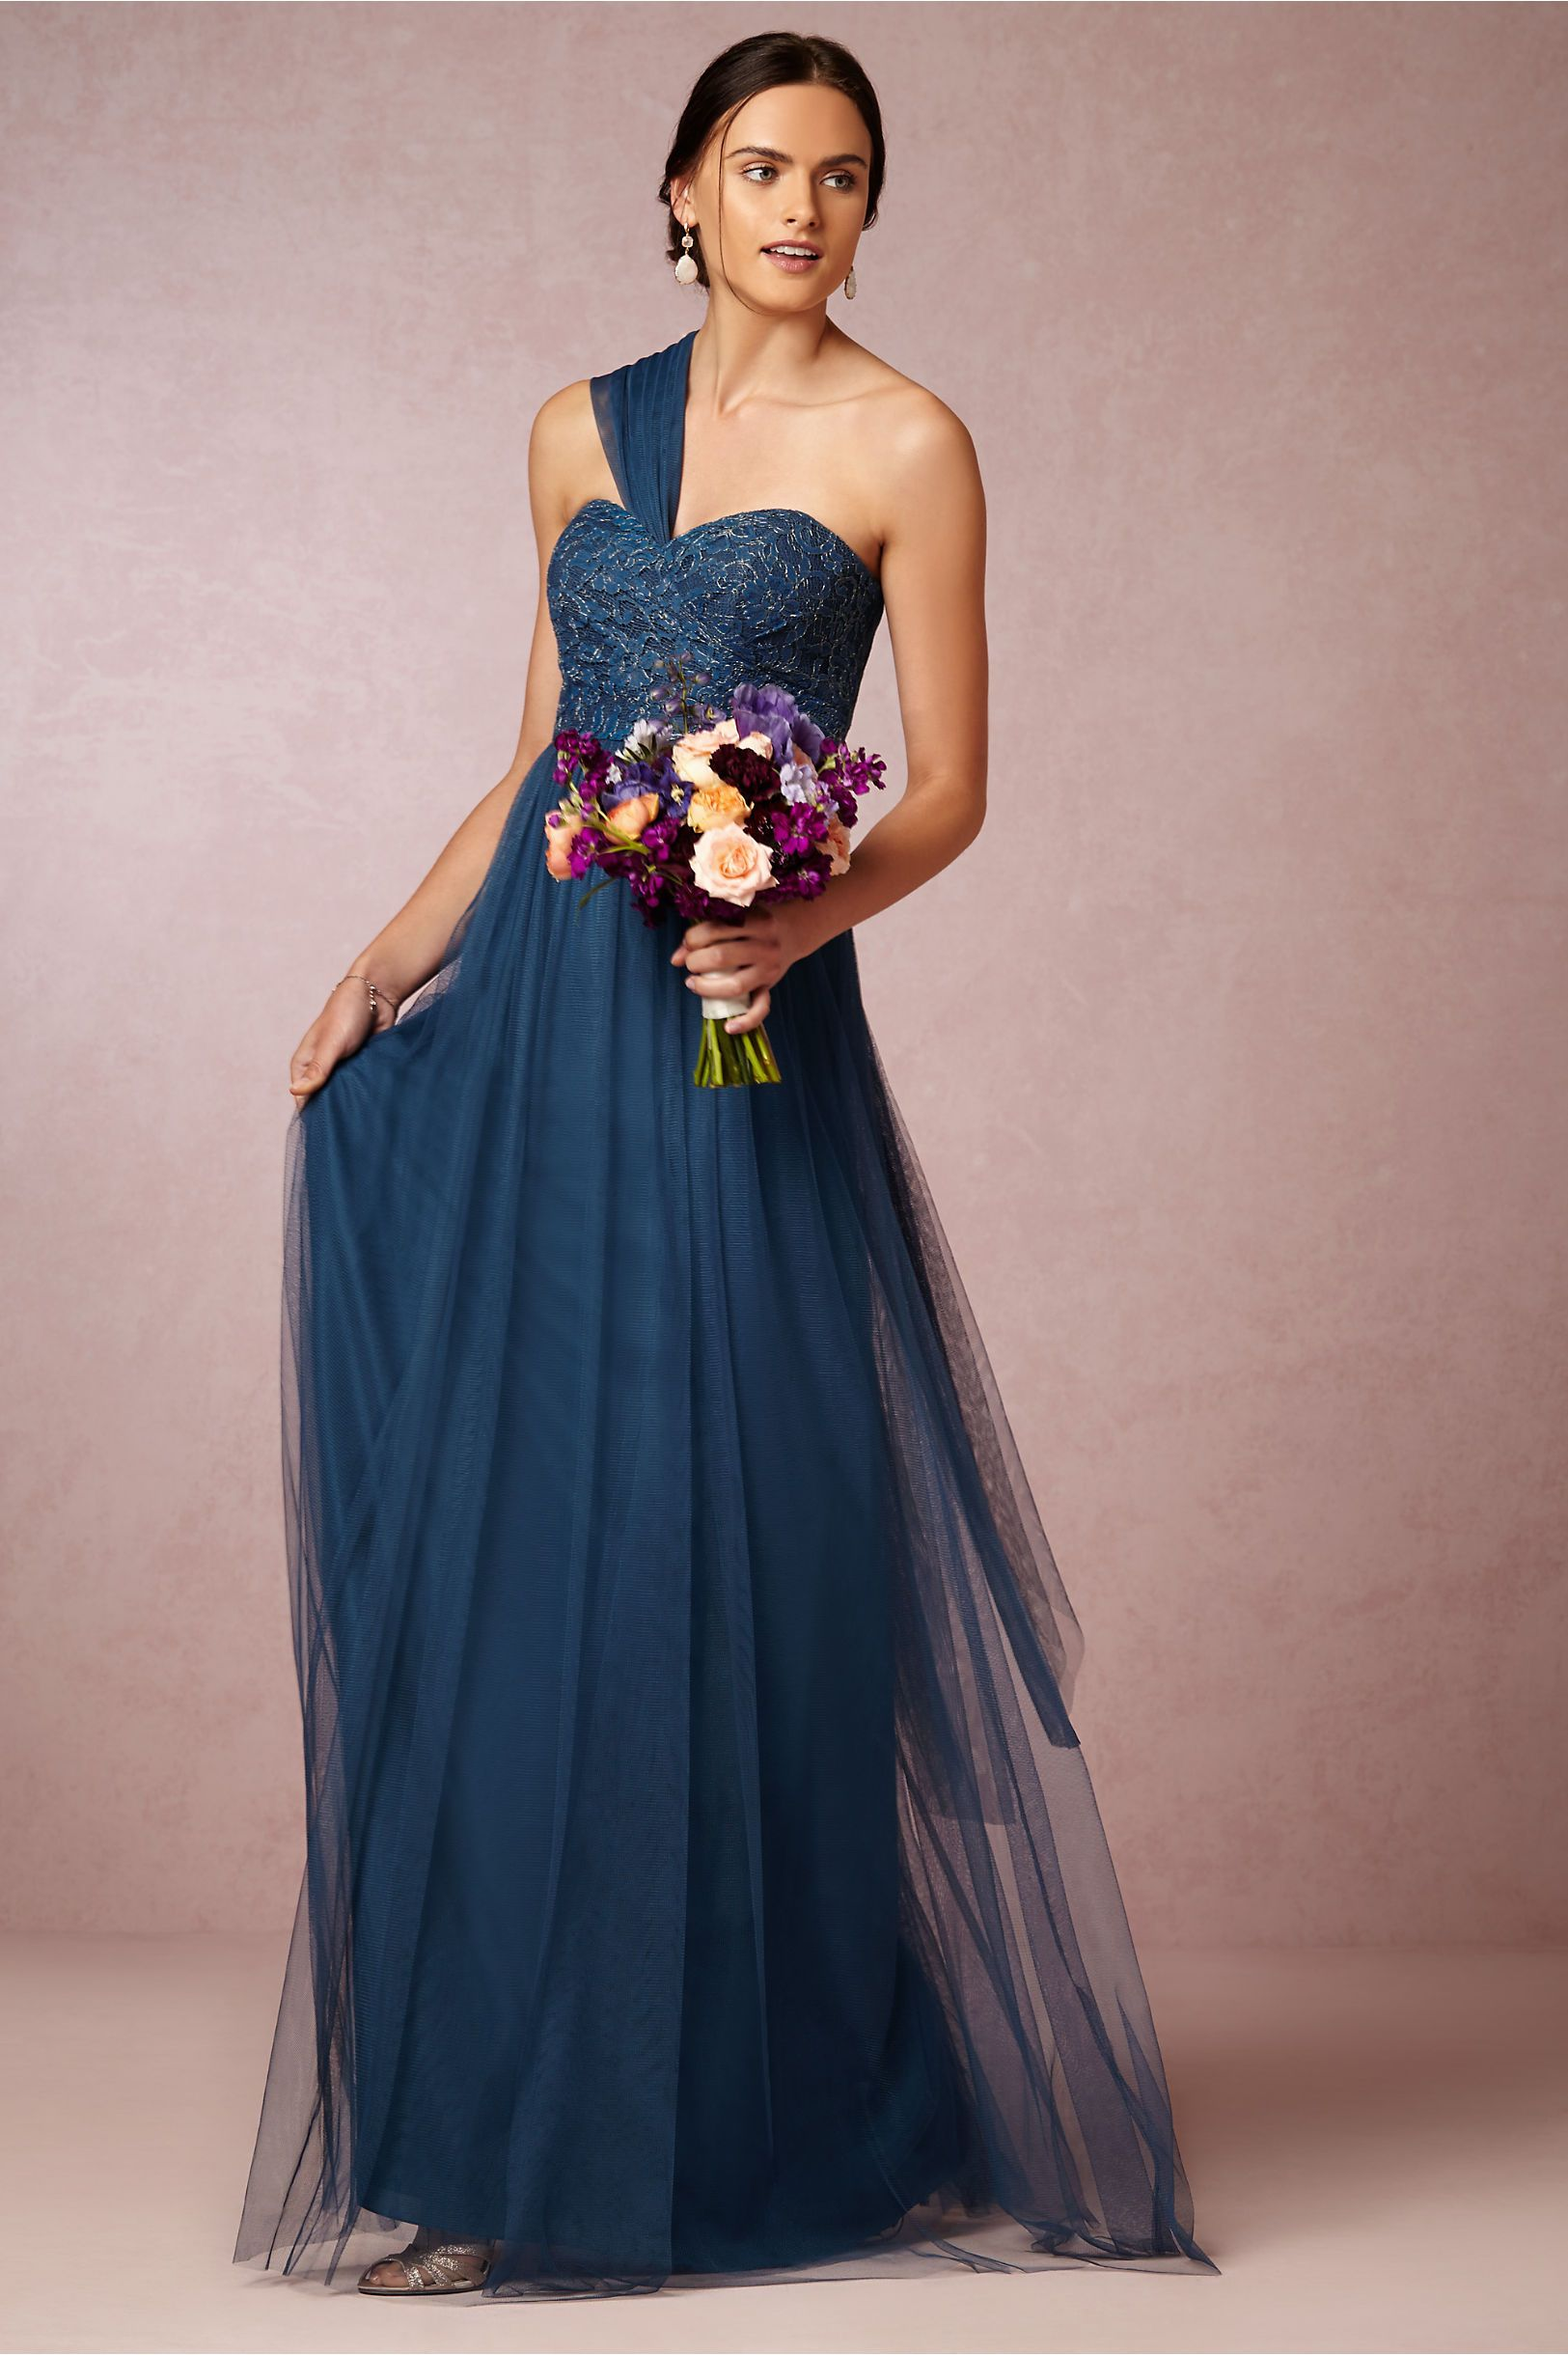 Juliette bridesmaids dress in lapis blue by jenny yoo a bhldn juliette bridesmaids dress in lapis blue by jenny yoo a bhldn exclusive ombrellifo Image collections